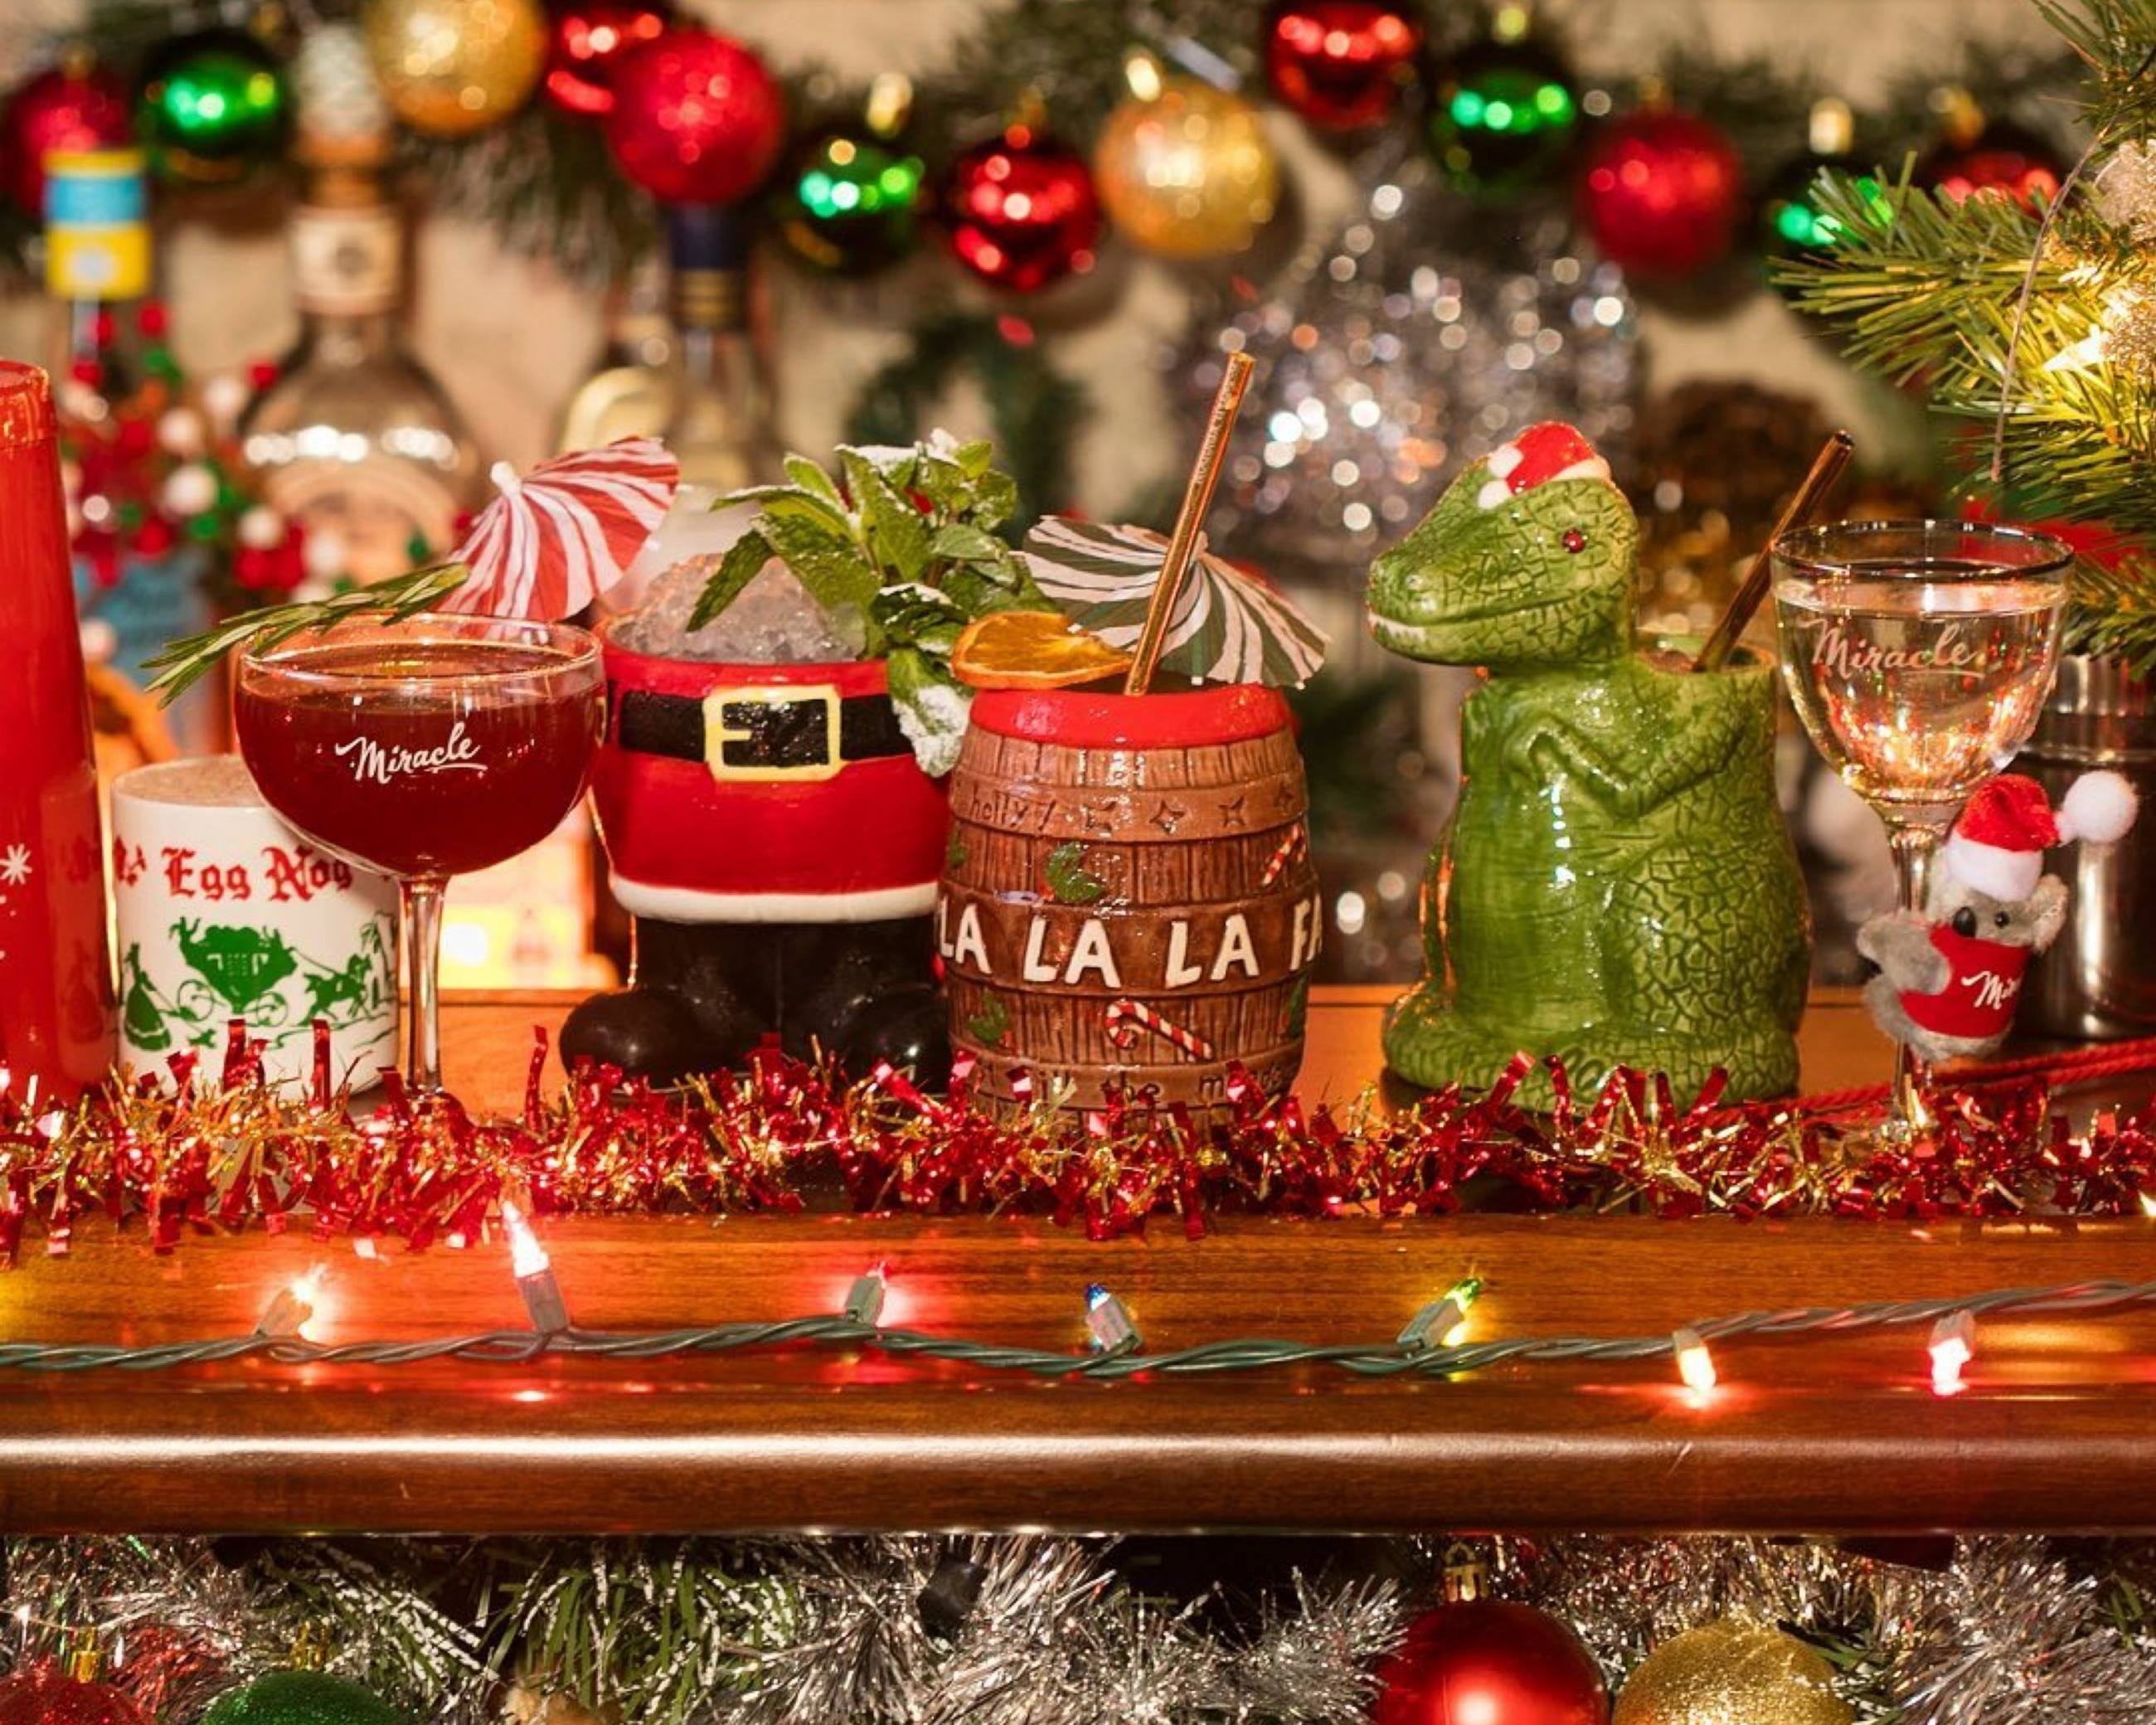 Holiday cocktails at Miracle On Melrose in West Hollywood